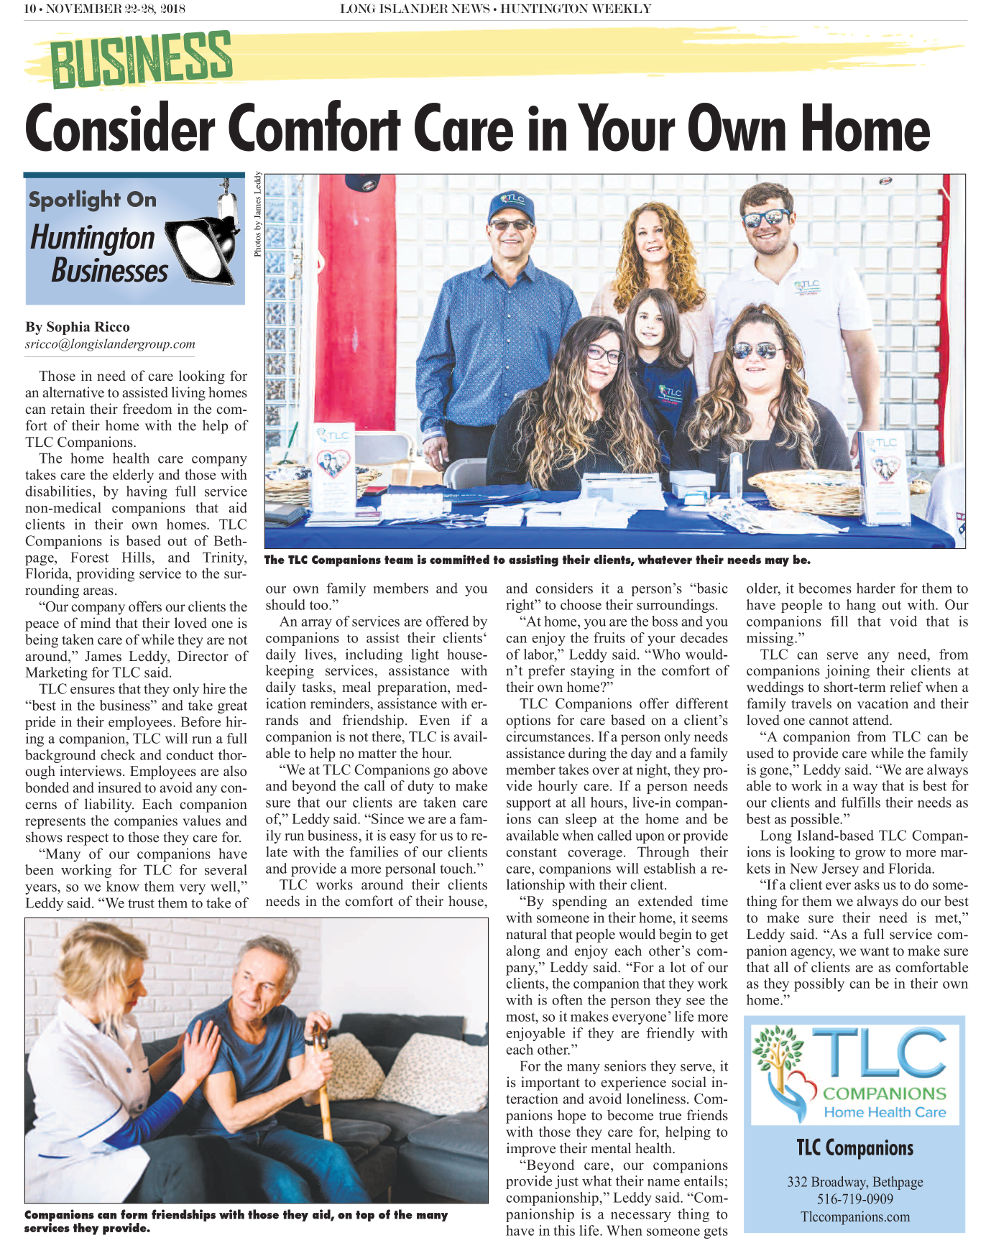 Comfort Care in Home